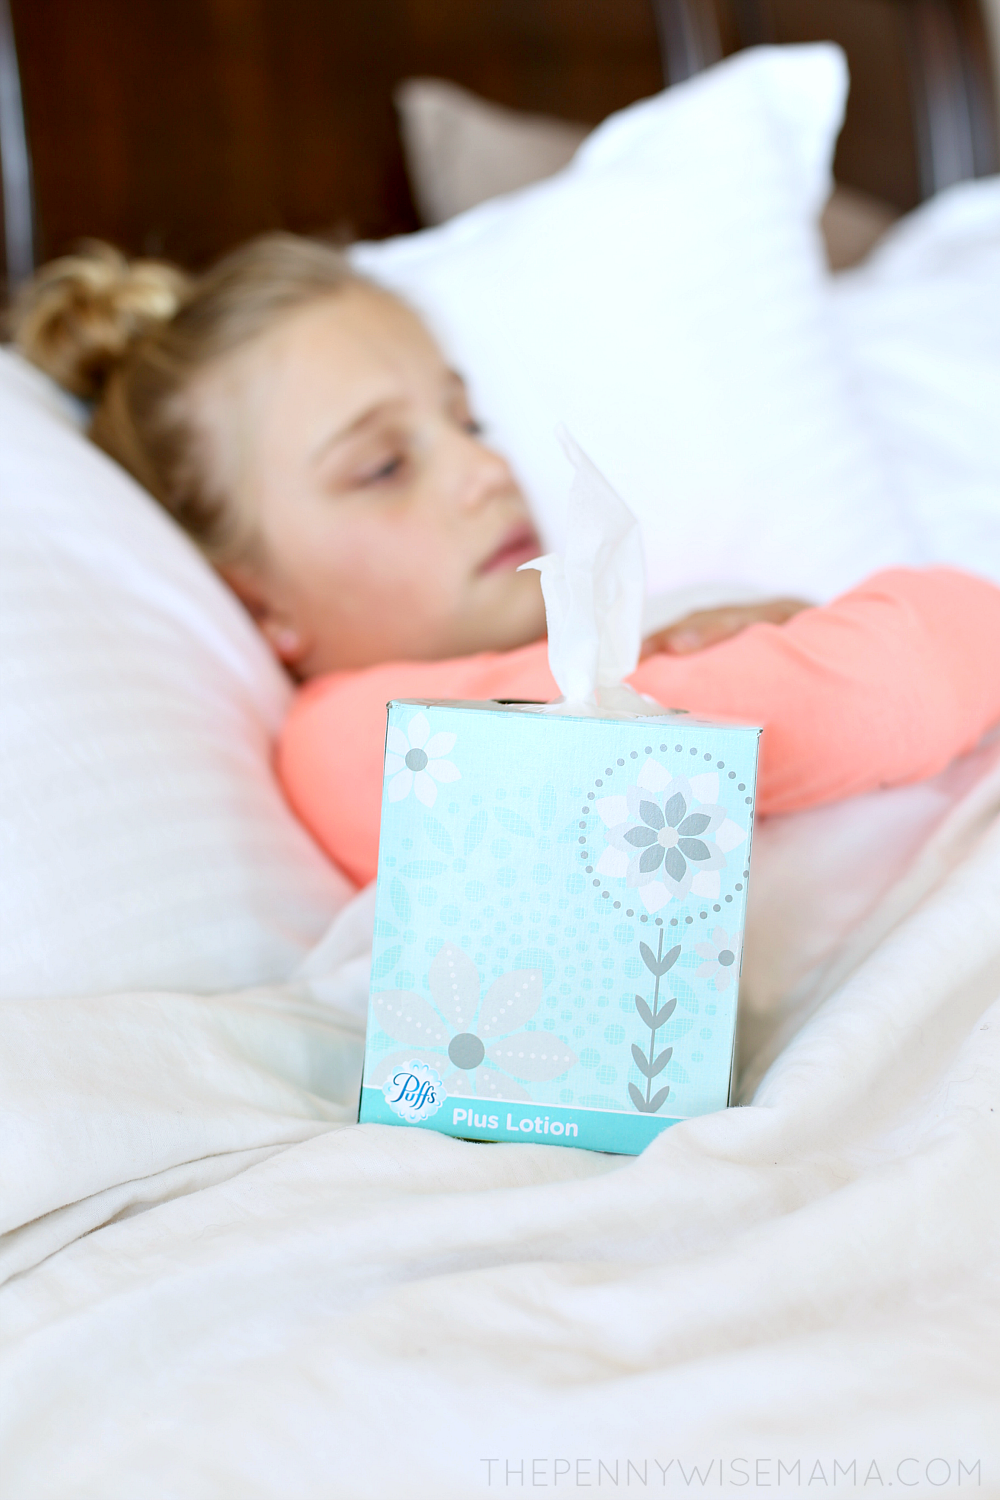 Tips to Feel Better When You Have the Flu